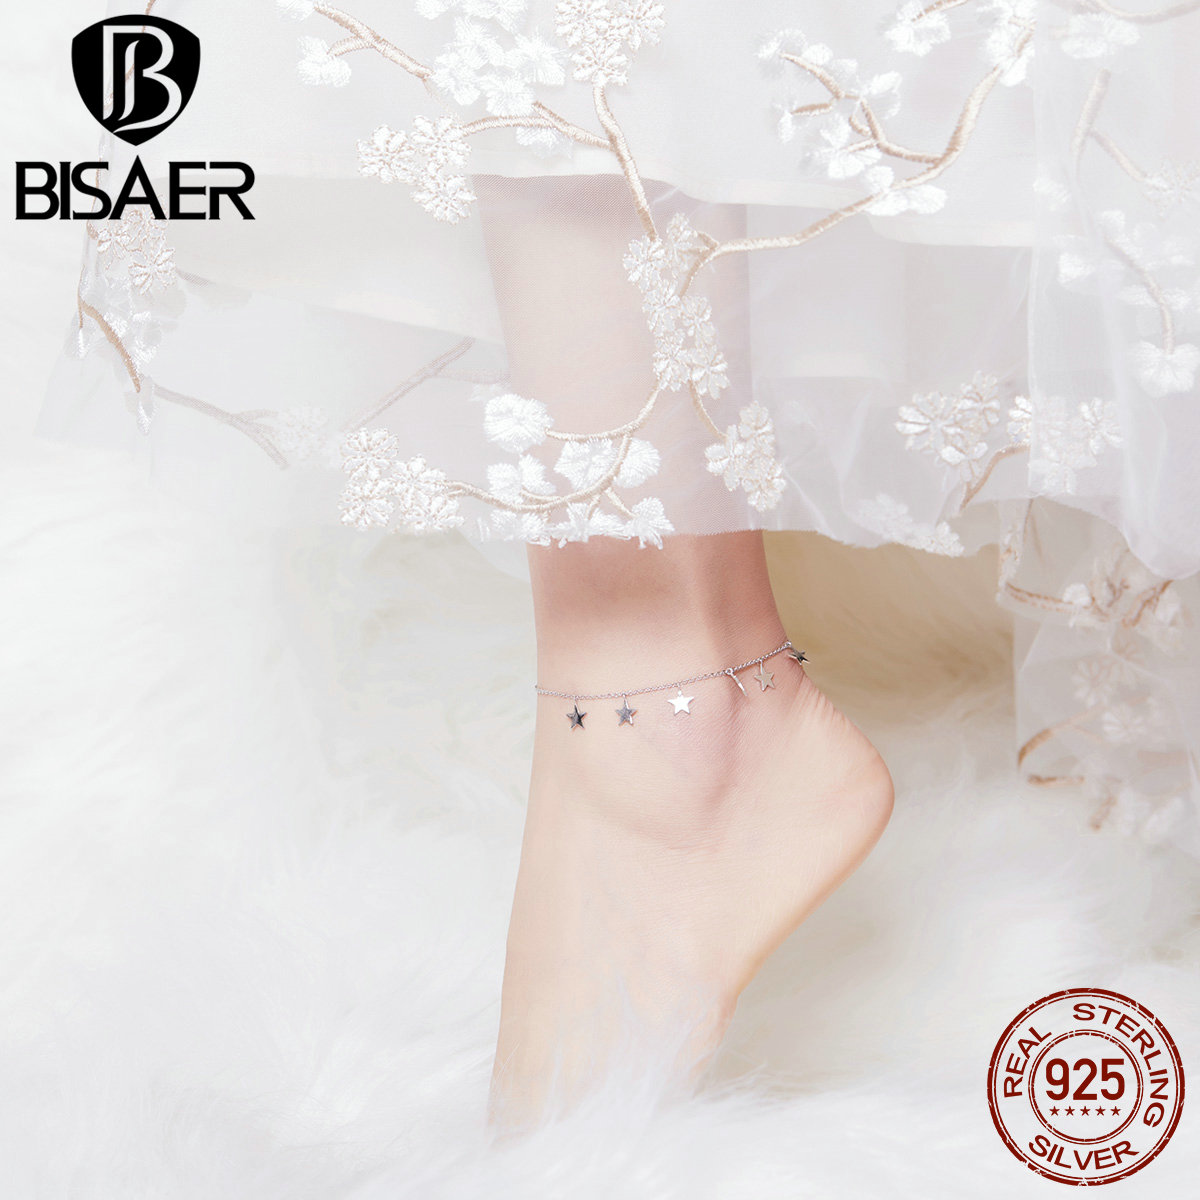 BISAER Simple Stars Female Anklets 925 Sterling Silver Crochet Foot Jewelry On Foot Ankle Bracelets For Women Leg Chain HST008